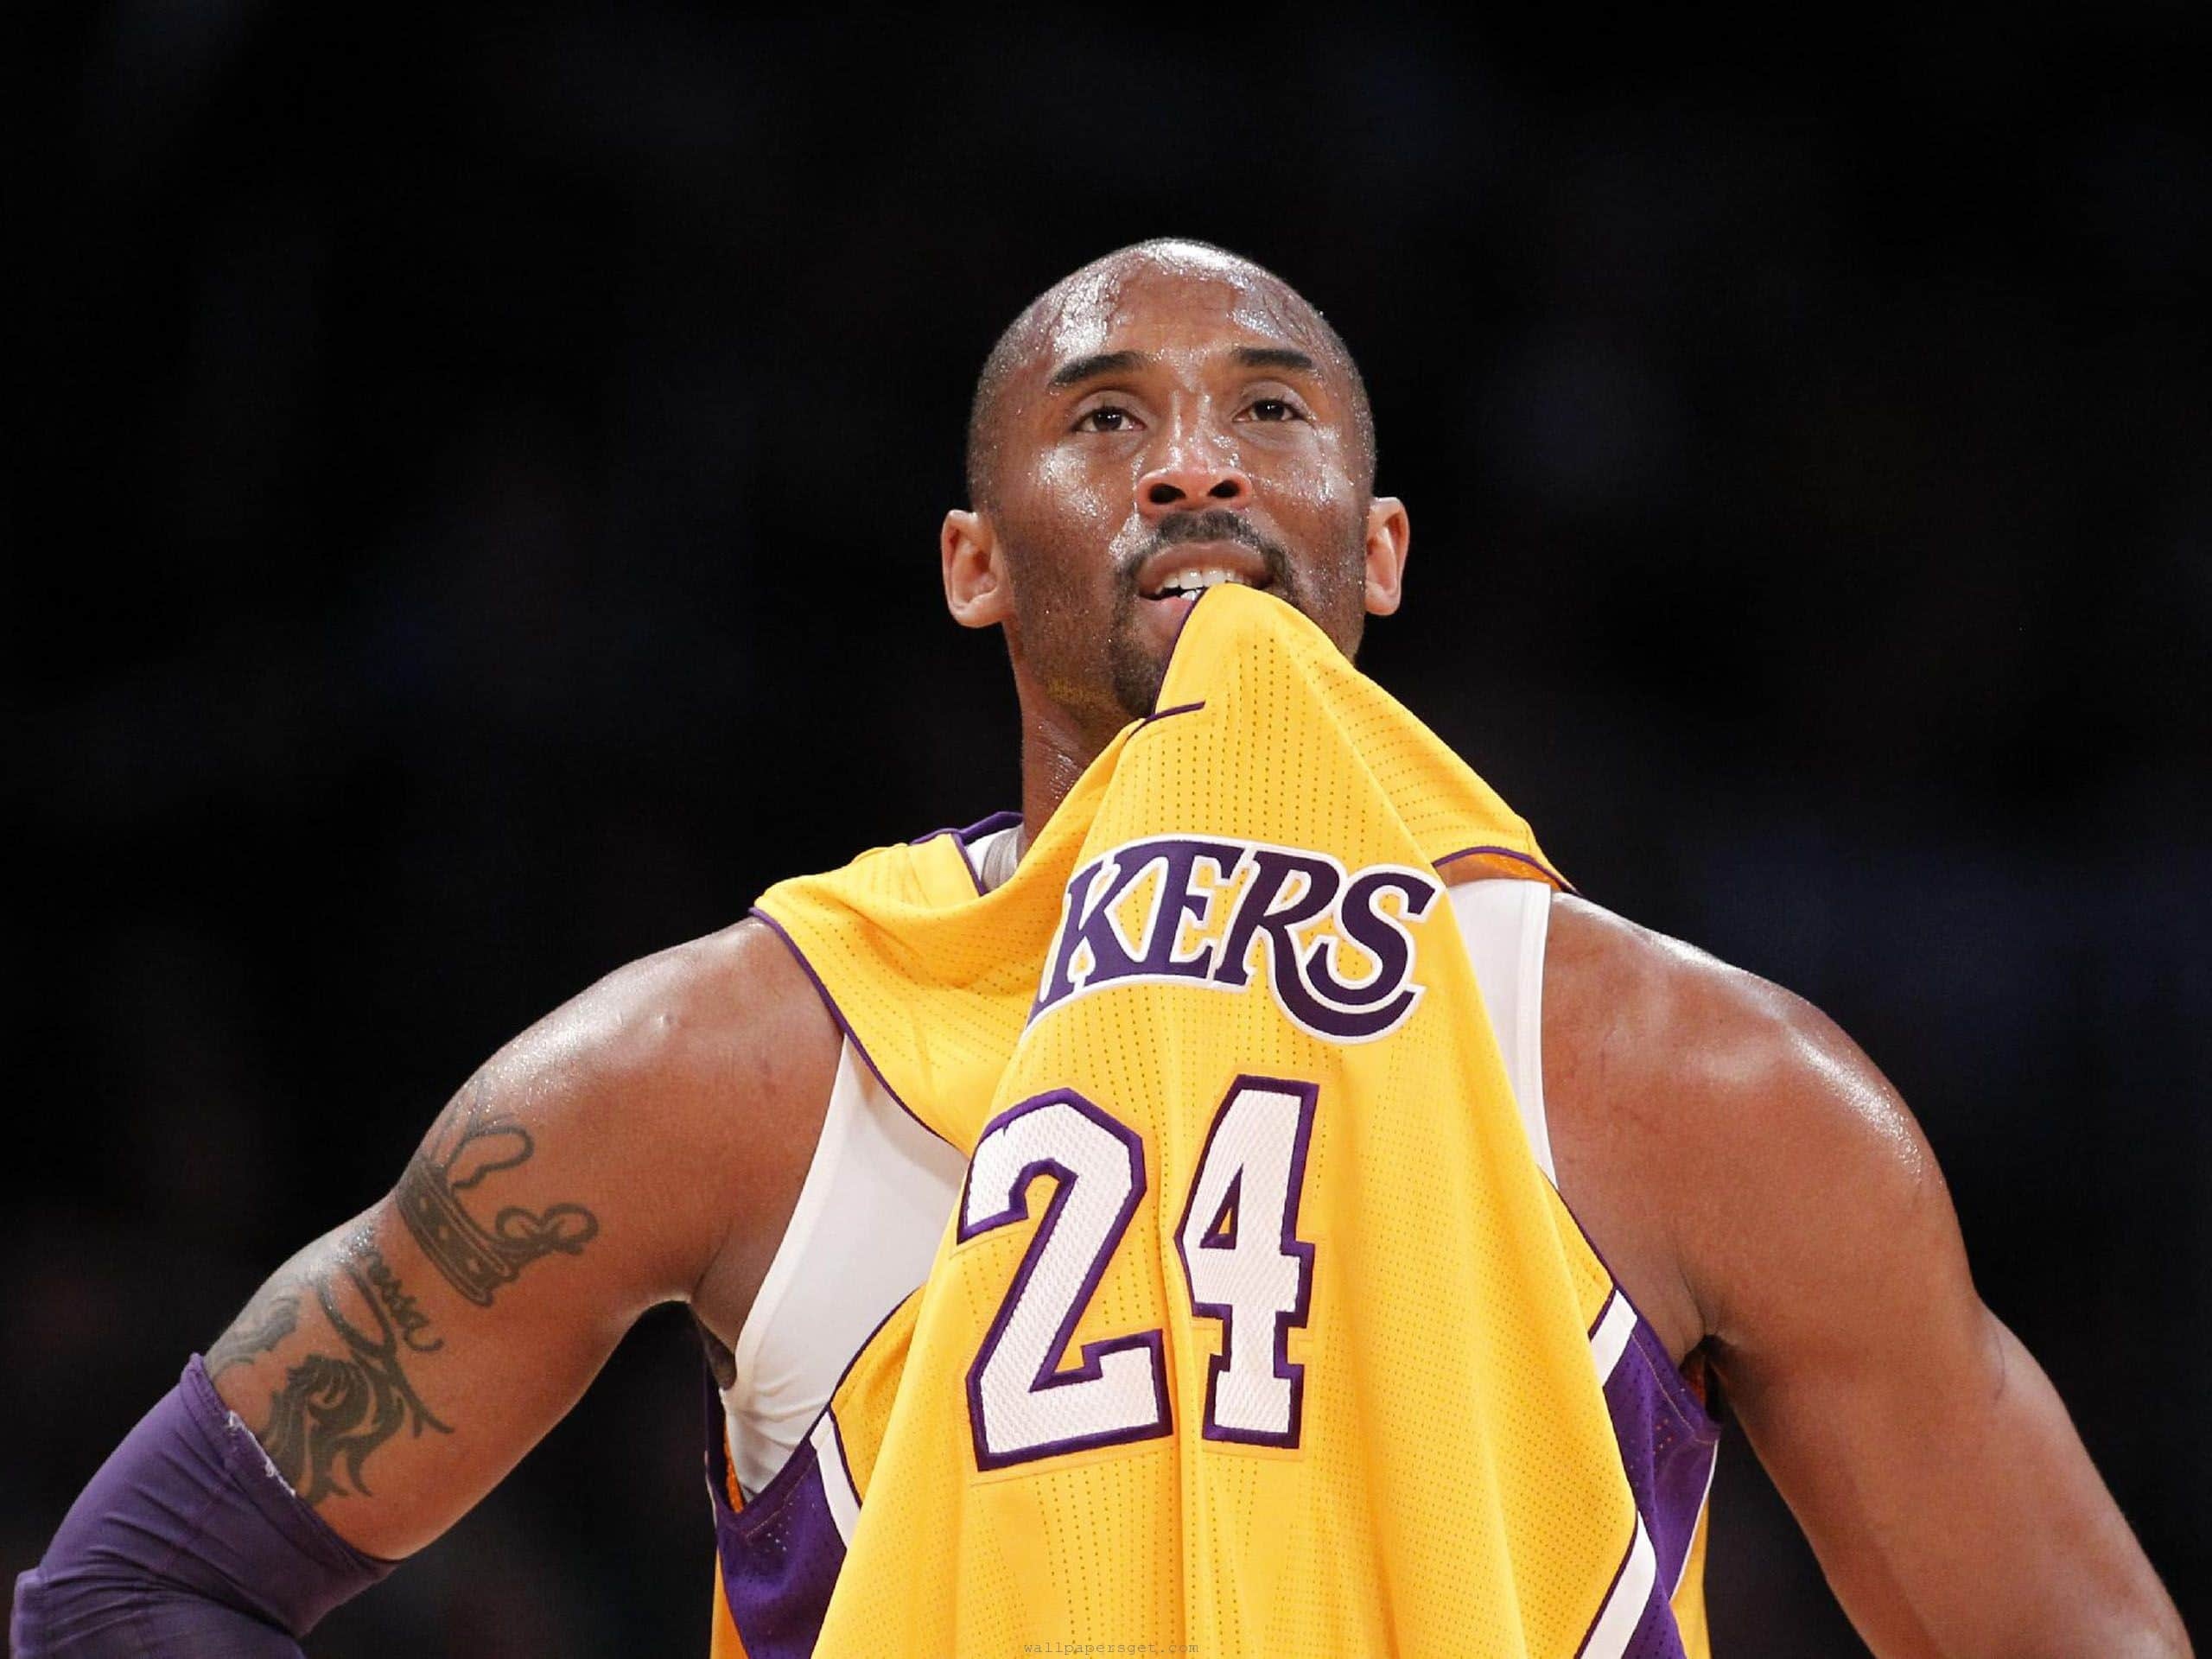 Kobe Bryant Net Worth, Bio 2017-2016, Wiki - REVISED! - Richest Celebrities